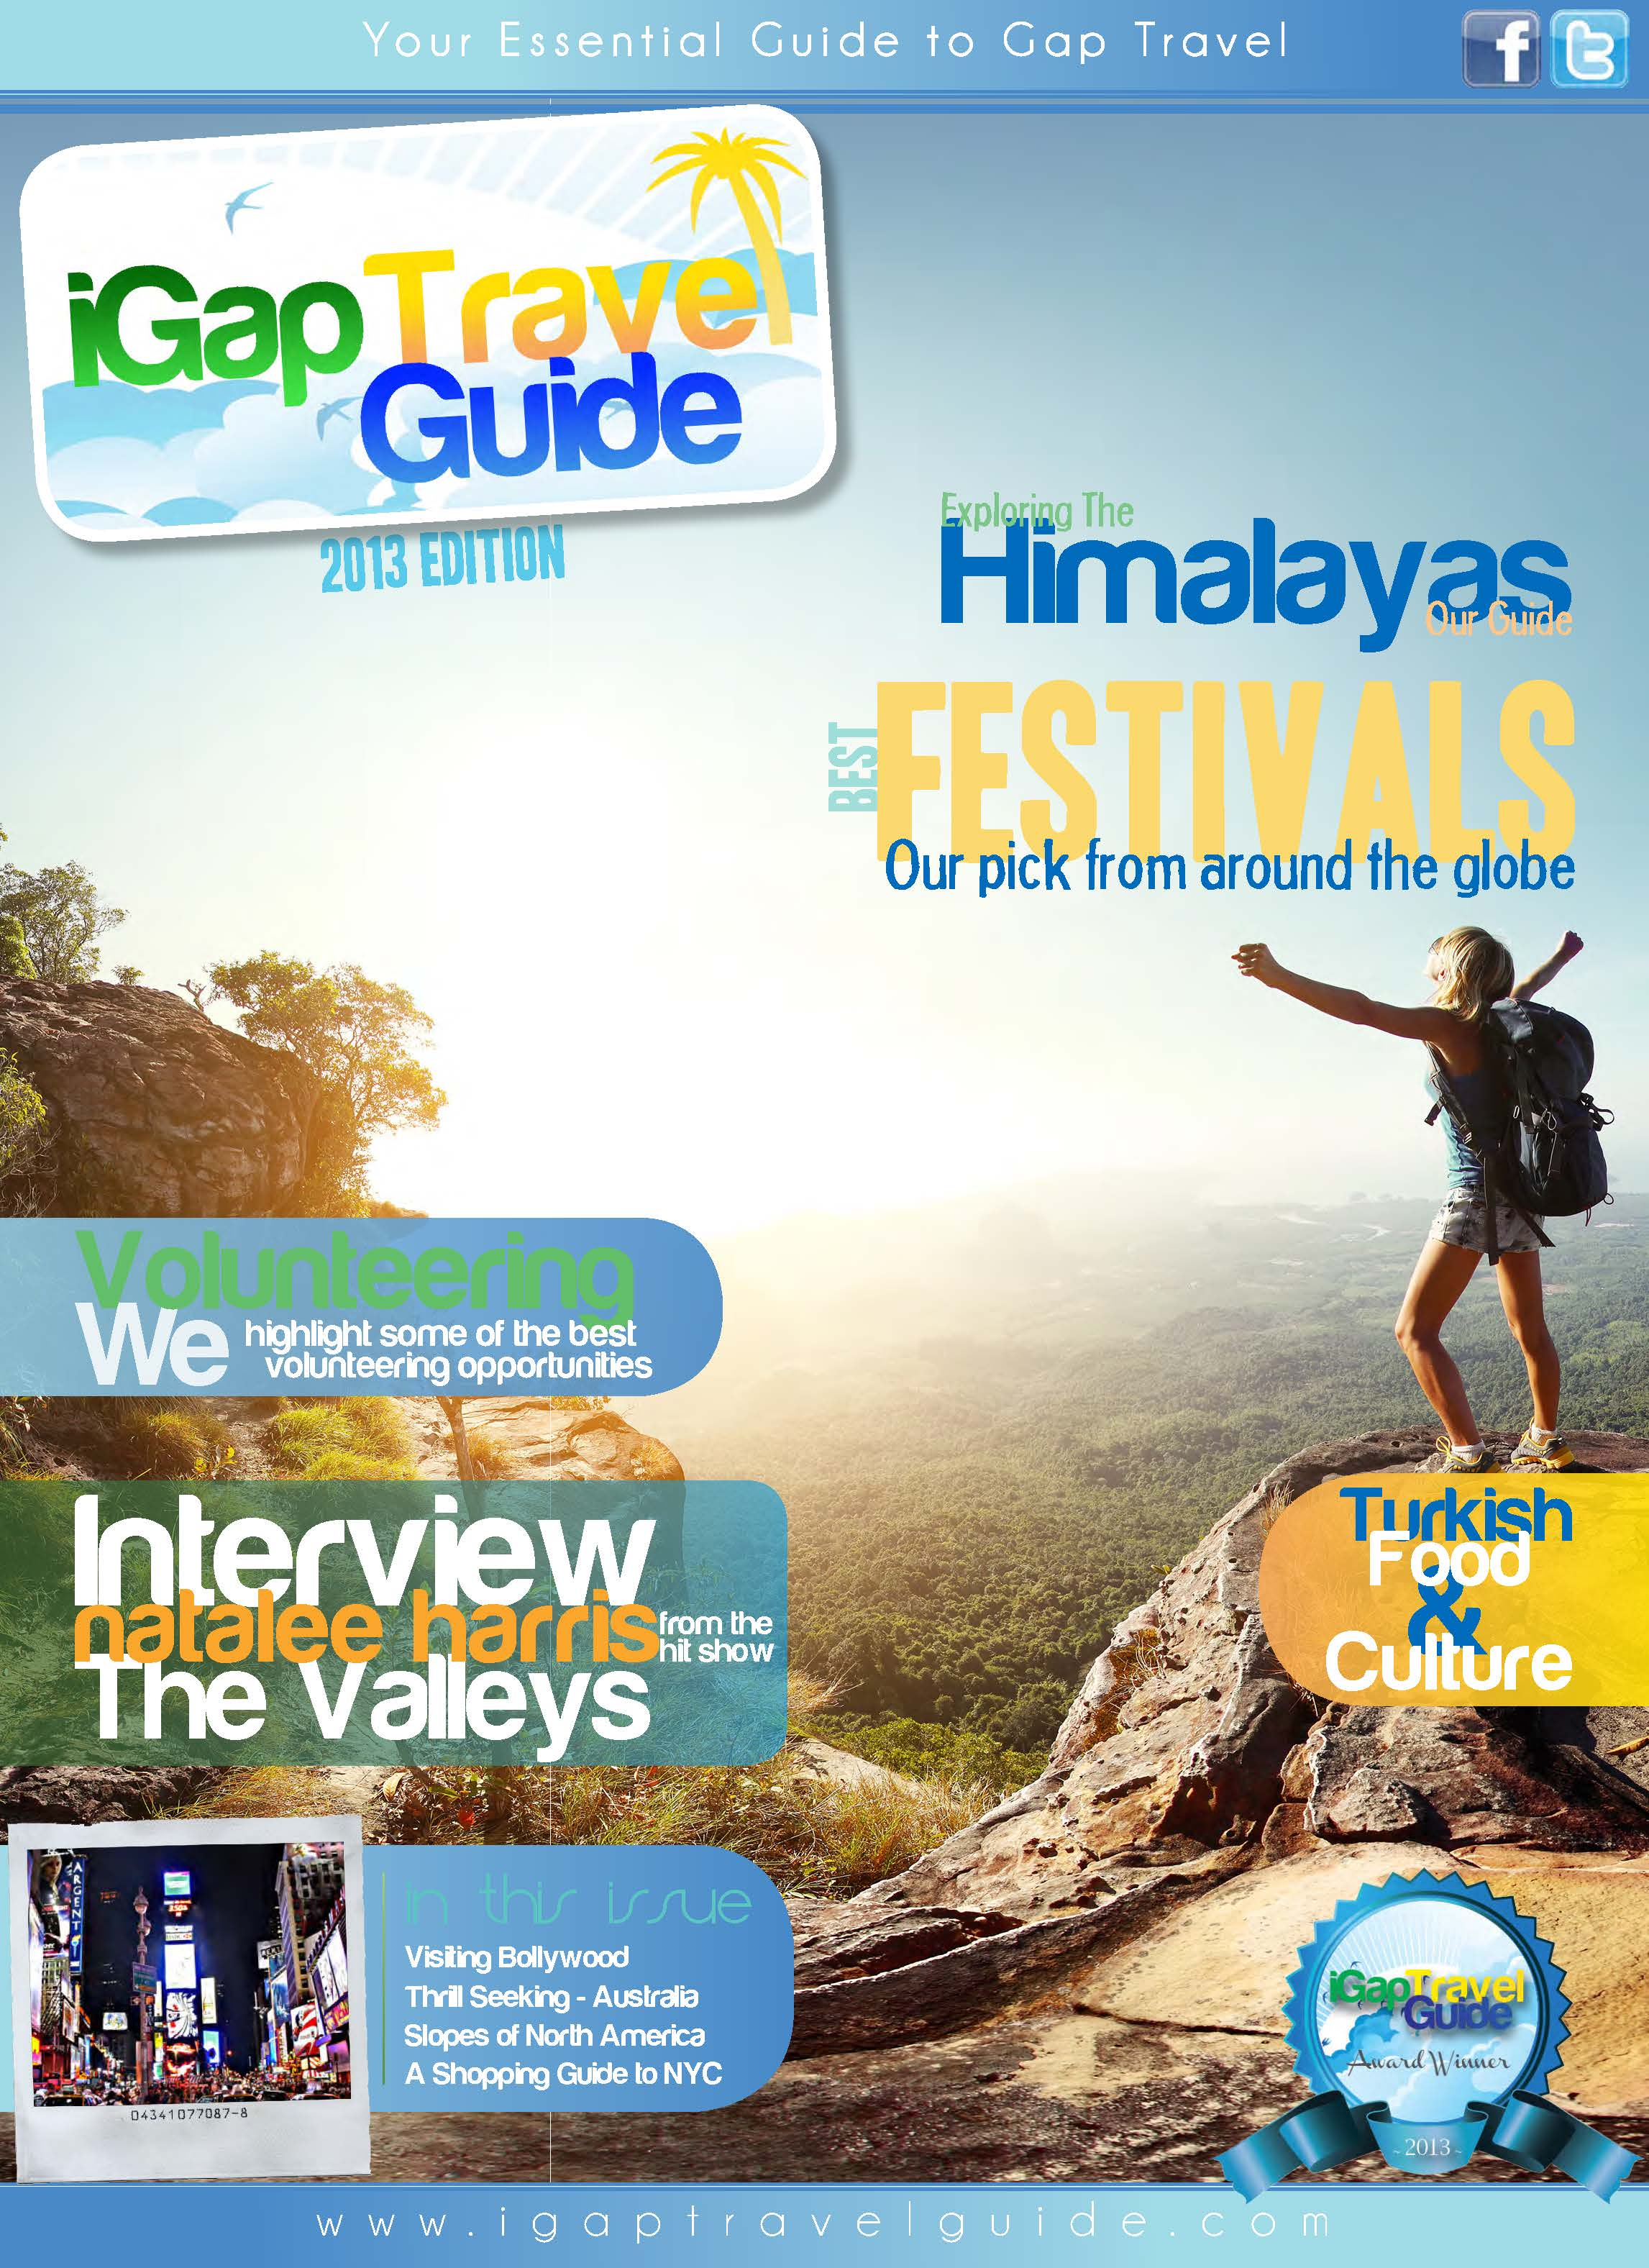 The iGap Travel Guide 2013 - Cover Image